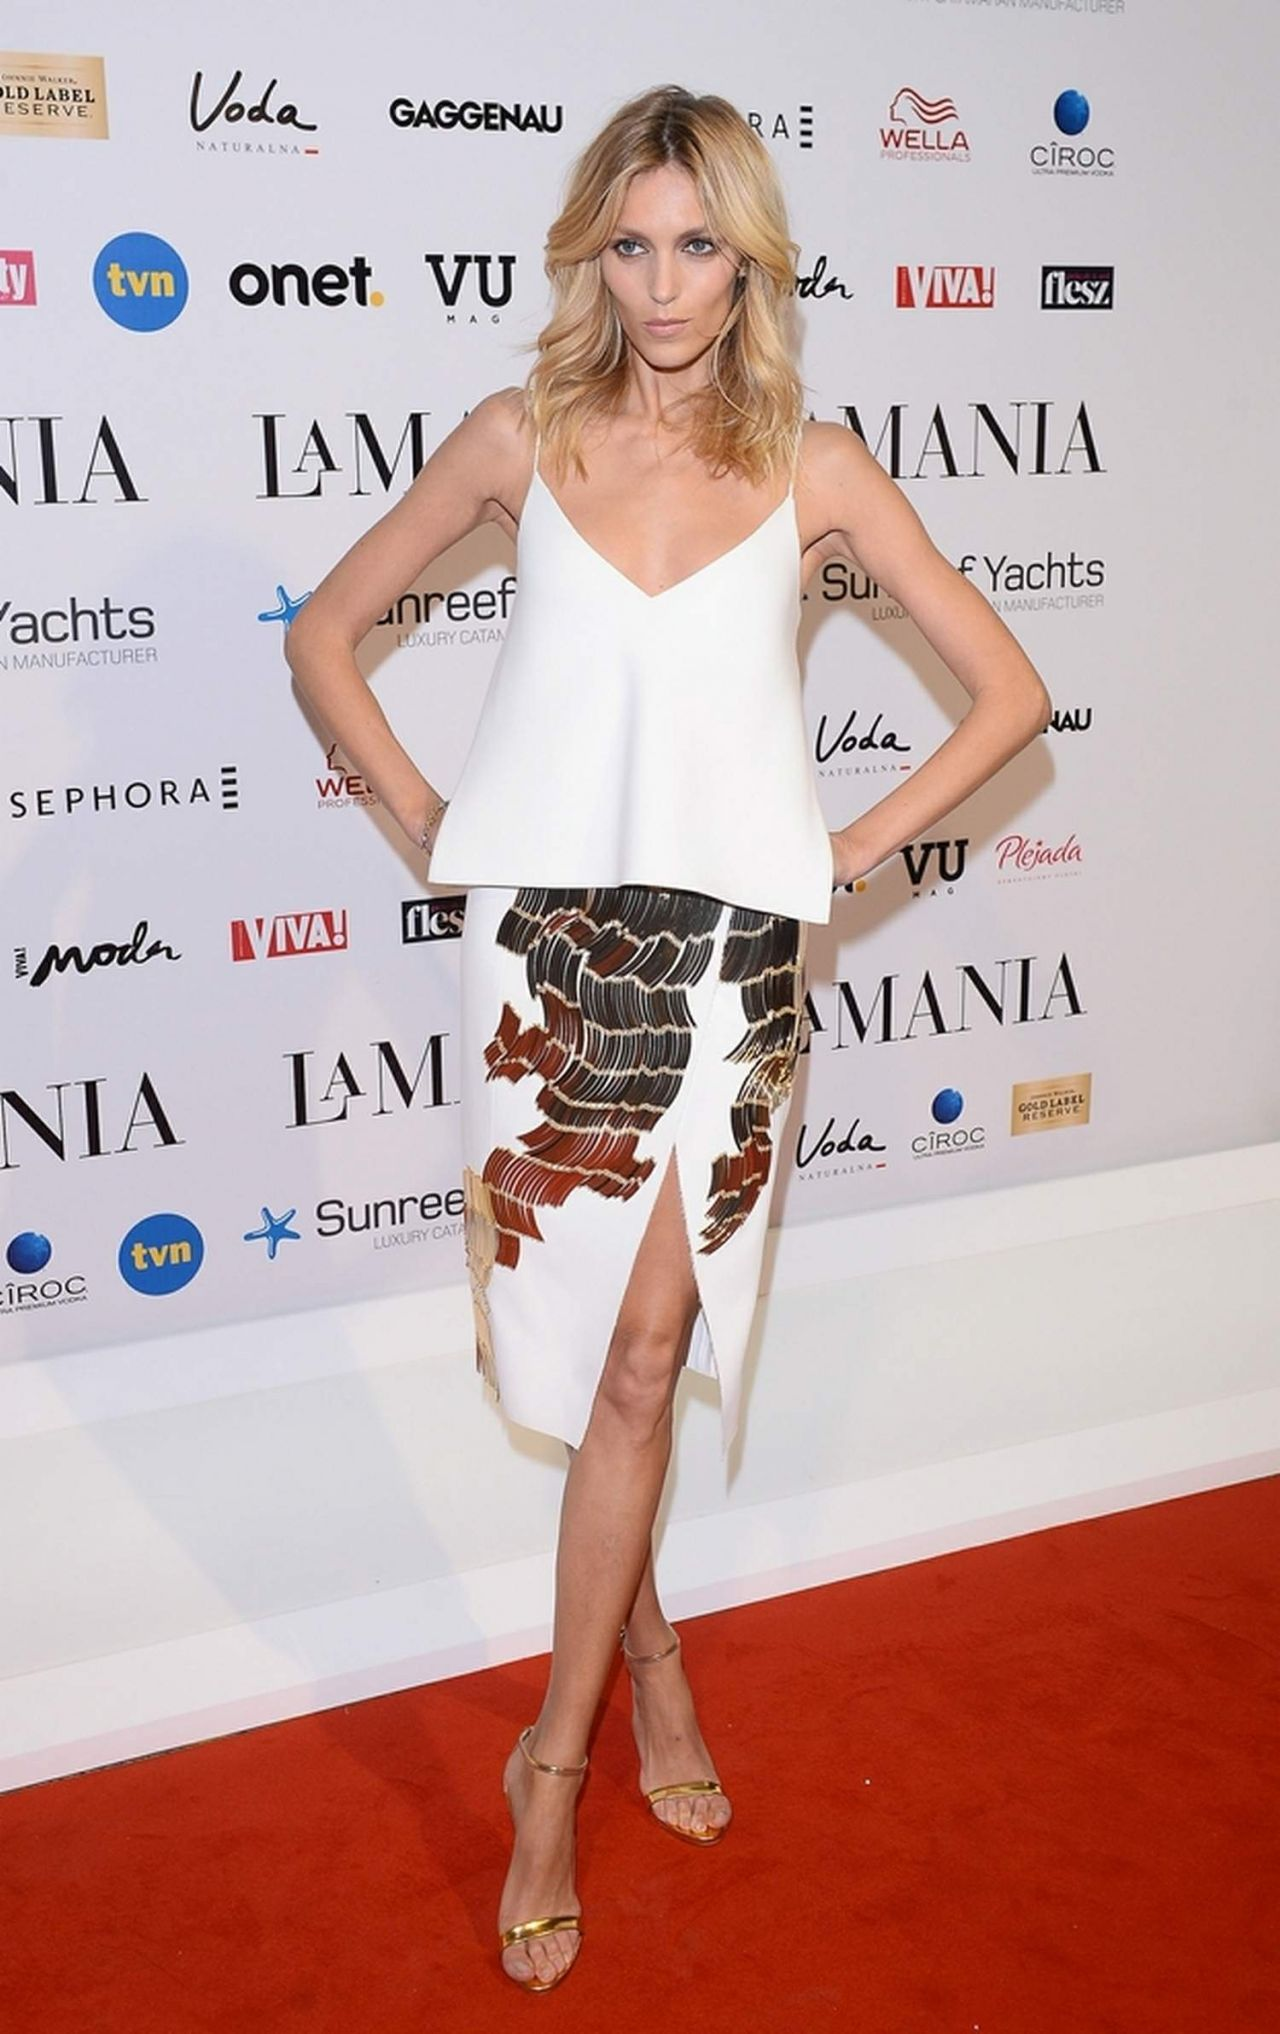 Anja Rubiks Leaked Cell Phone Pictures